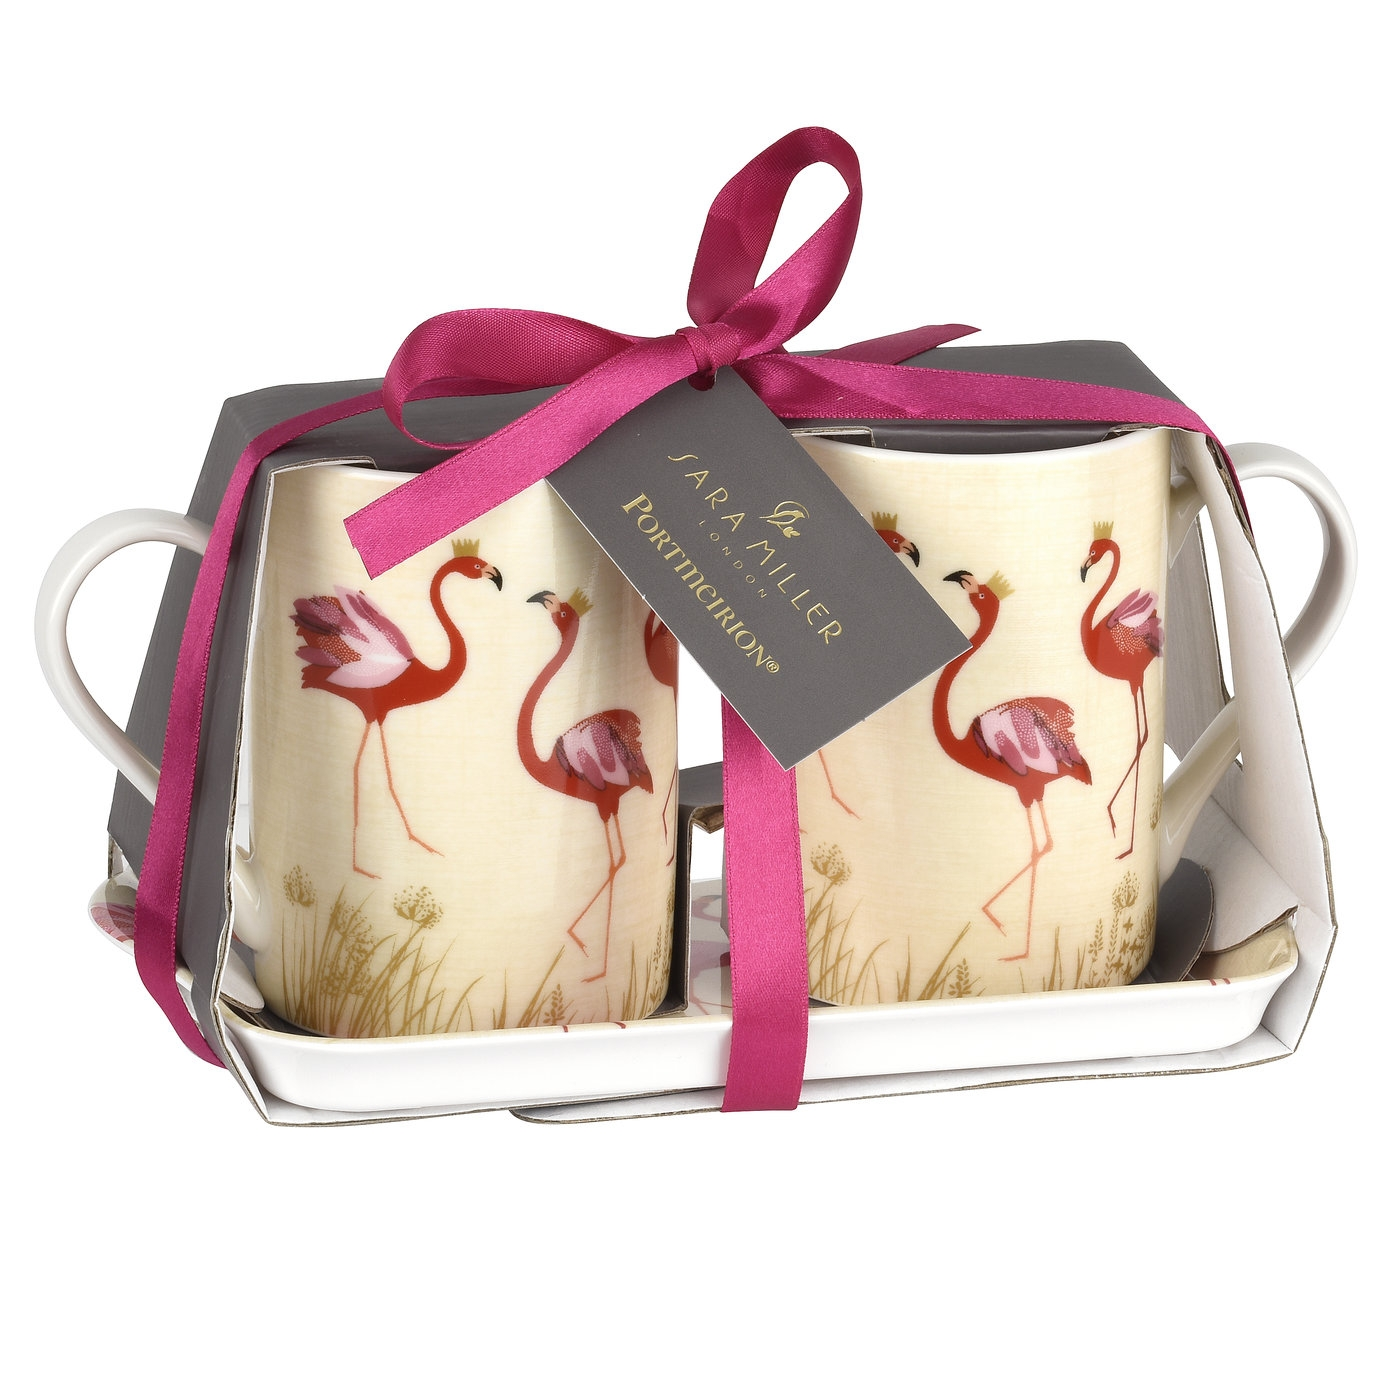 Sara Miller London for Pimpernel Flamingo 3 Piece Mug and Tray Set image number 1